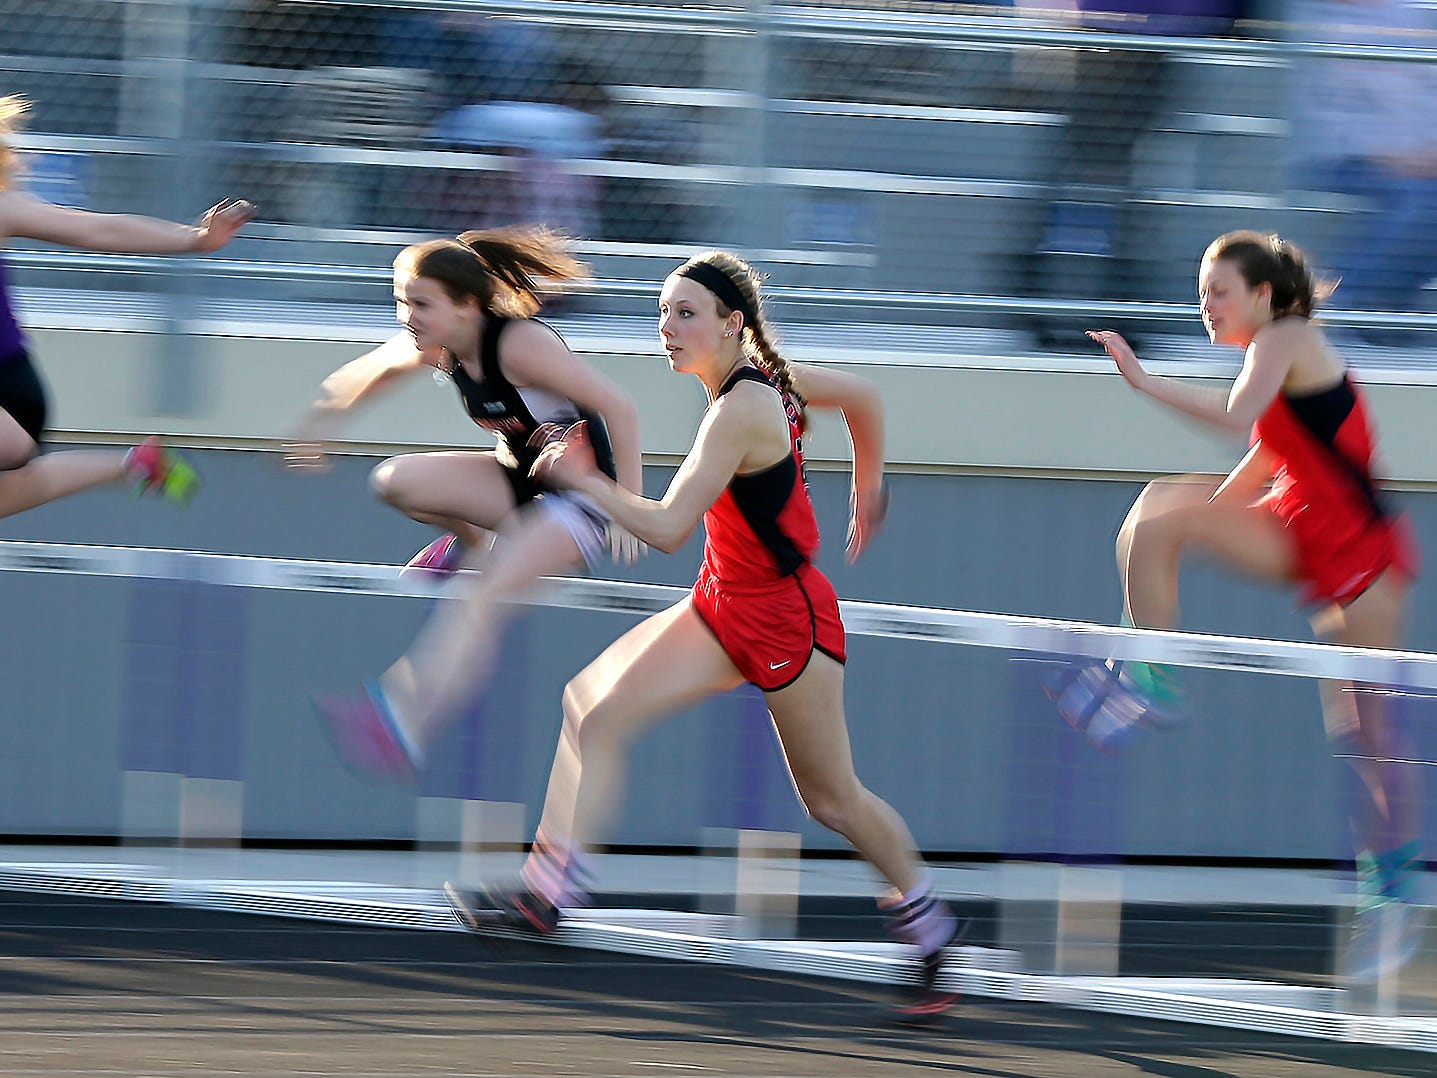 Oostburg's Kennedy Jepson leads the pace in the 100 hurdles finals at the 48th annual Vanderpan Invitational meet, Friday, May 4, 2018, in Sheboygan Falls, Wis.